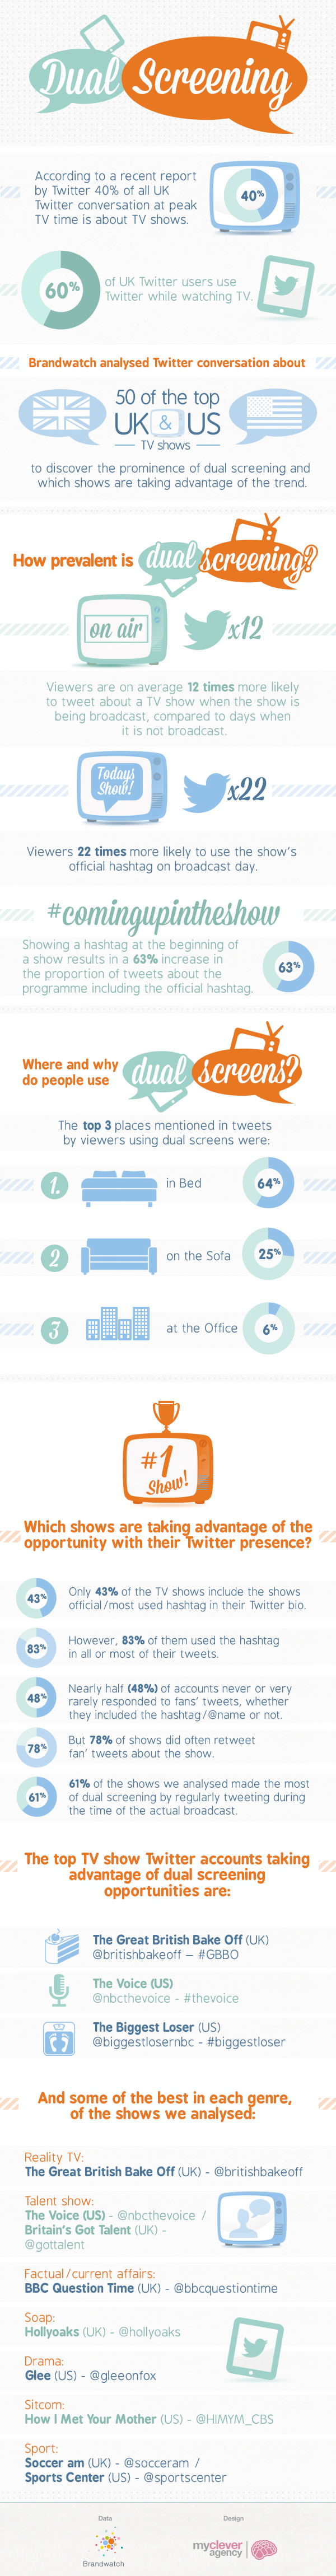 dual screen infographic